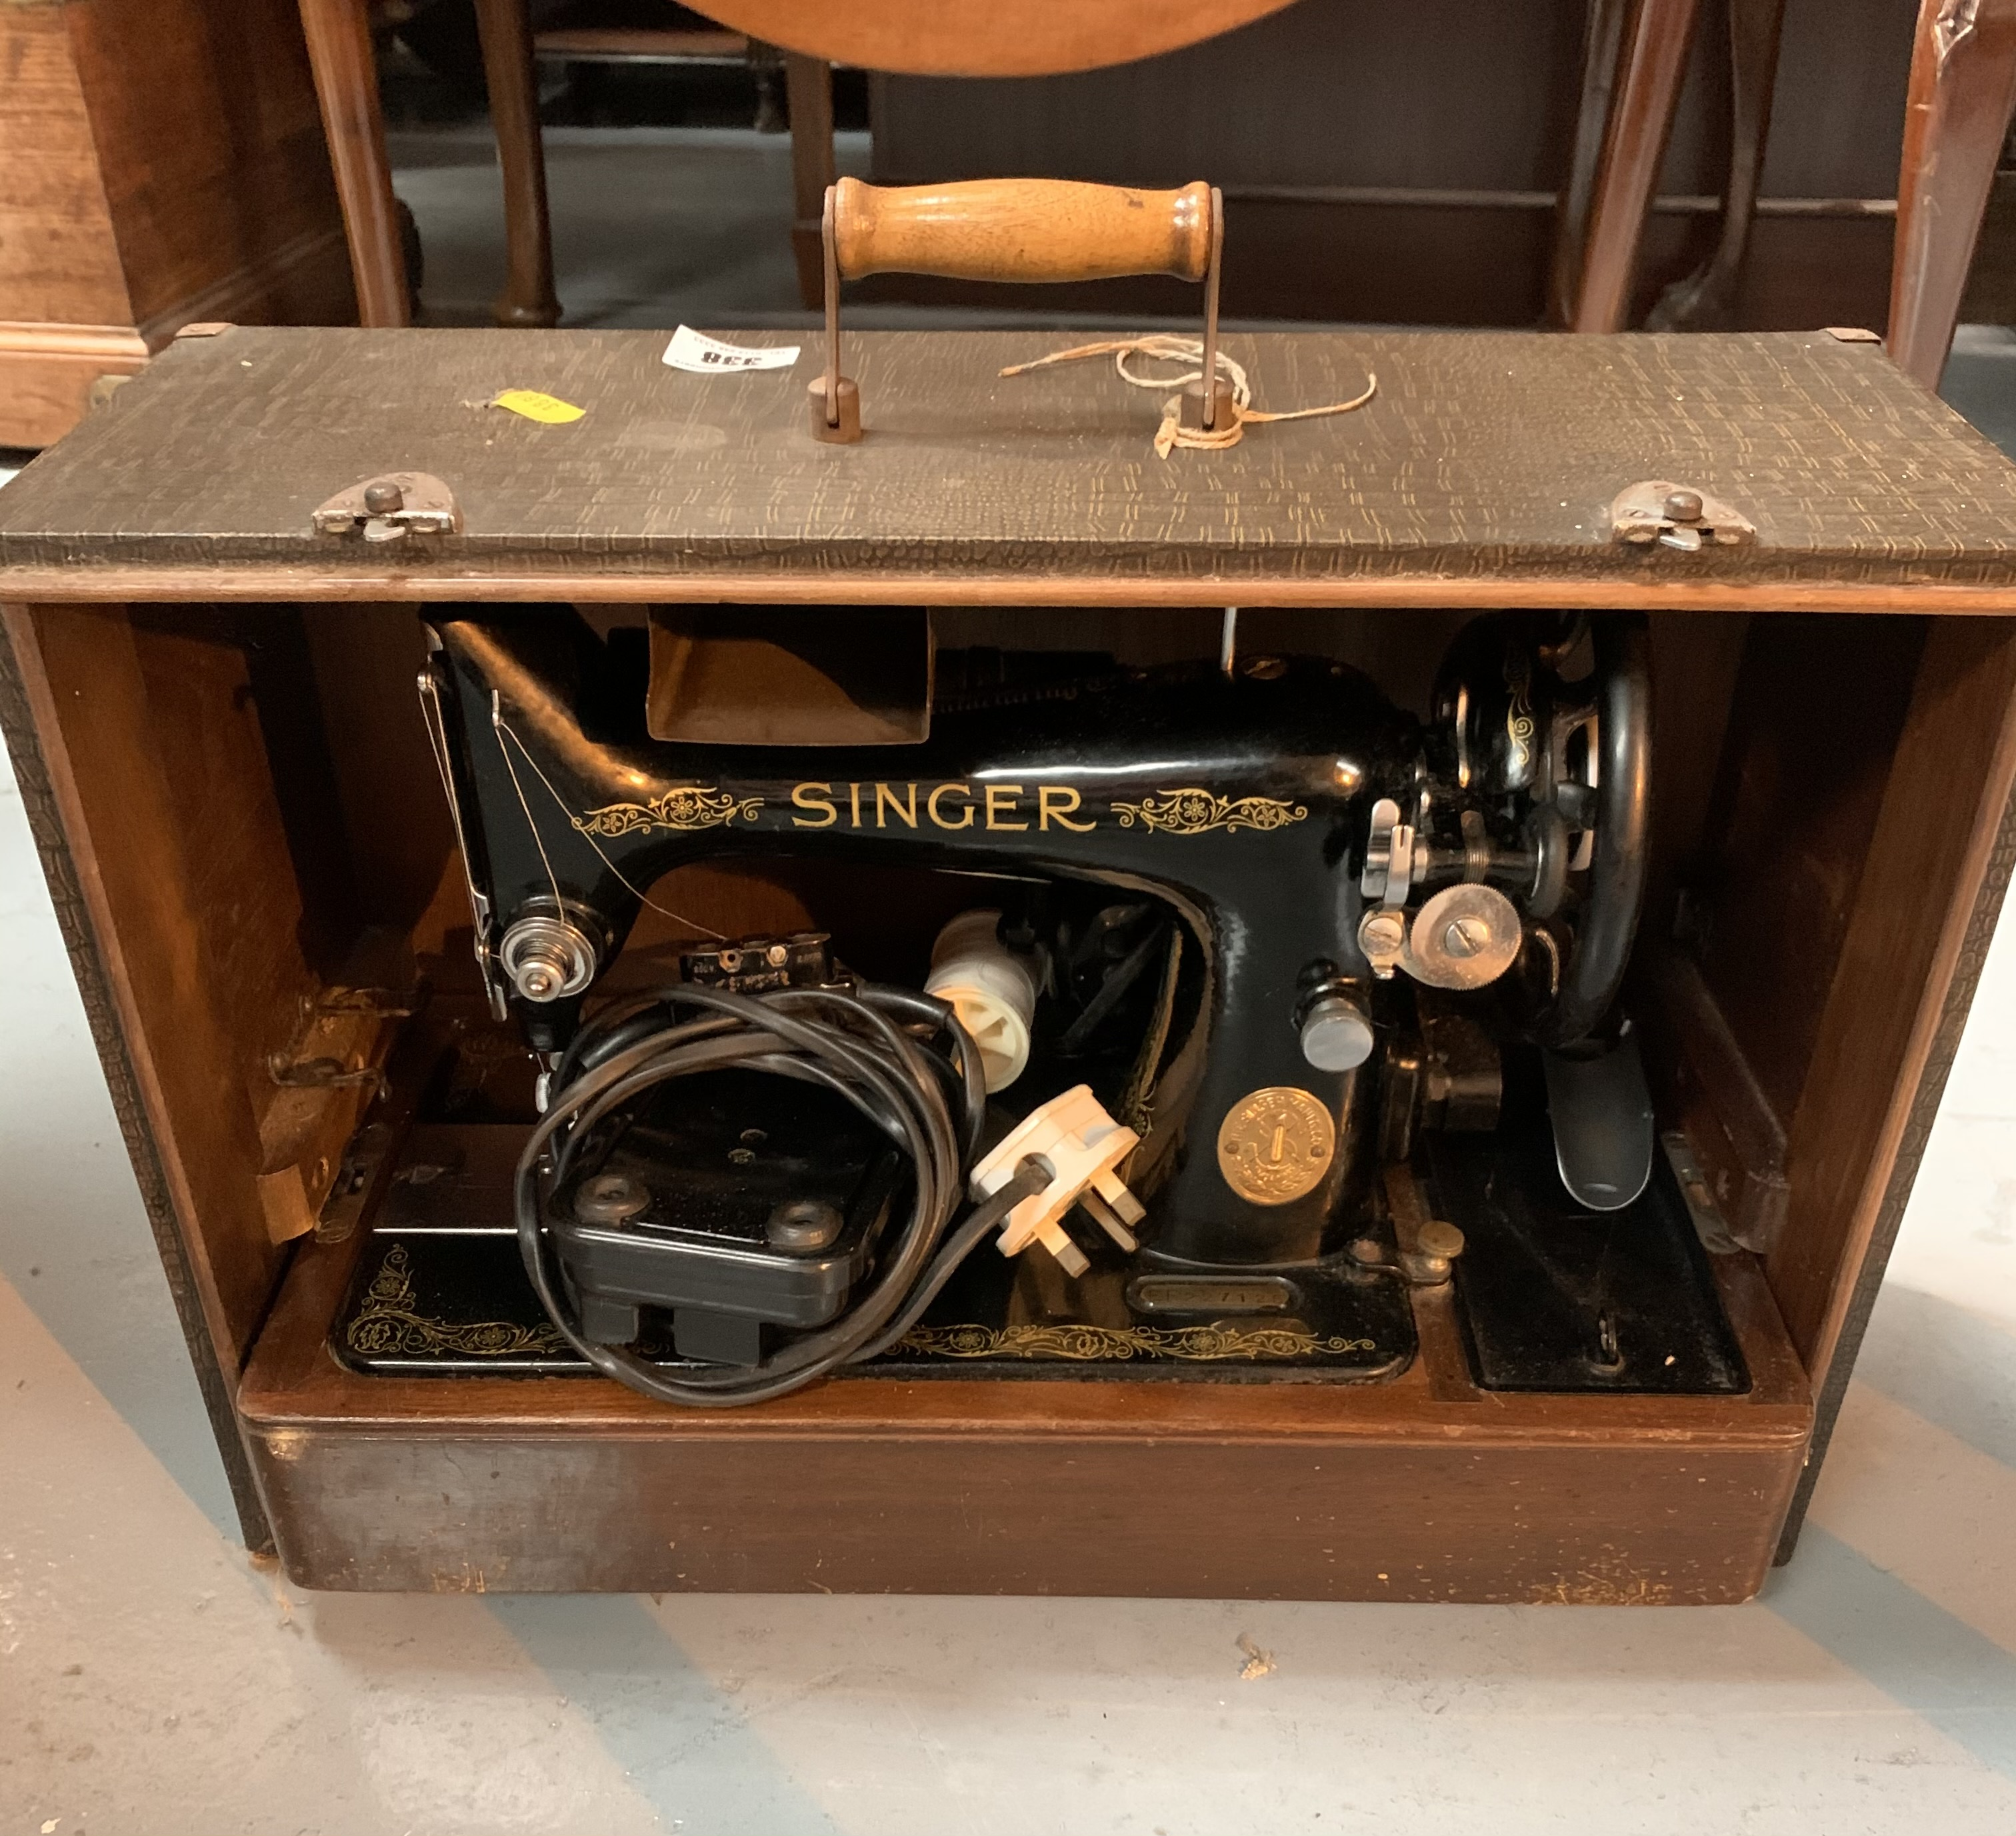 Singer sewing machine in case with accessories - Image 2 of 4